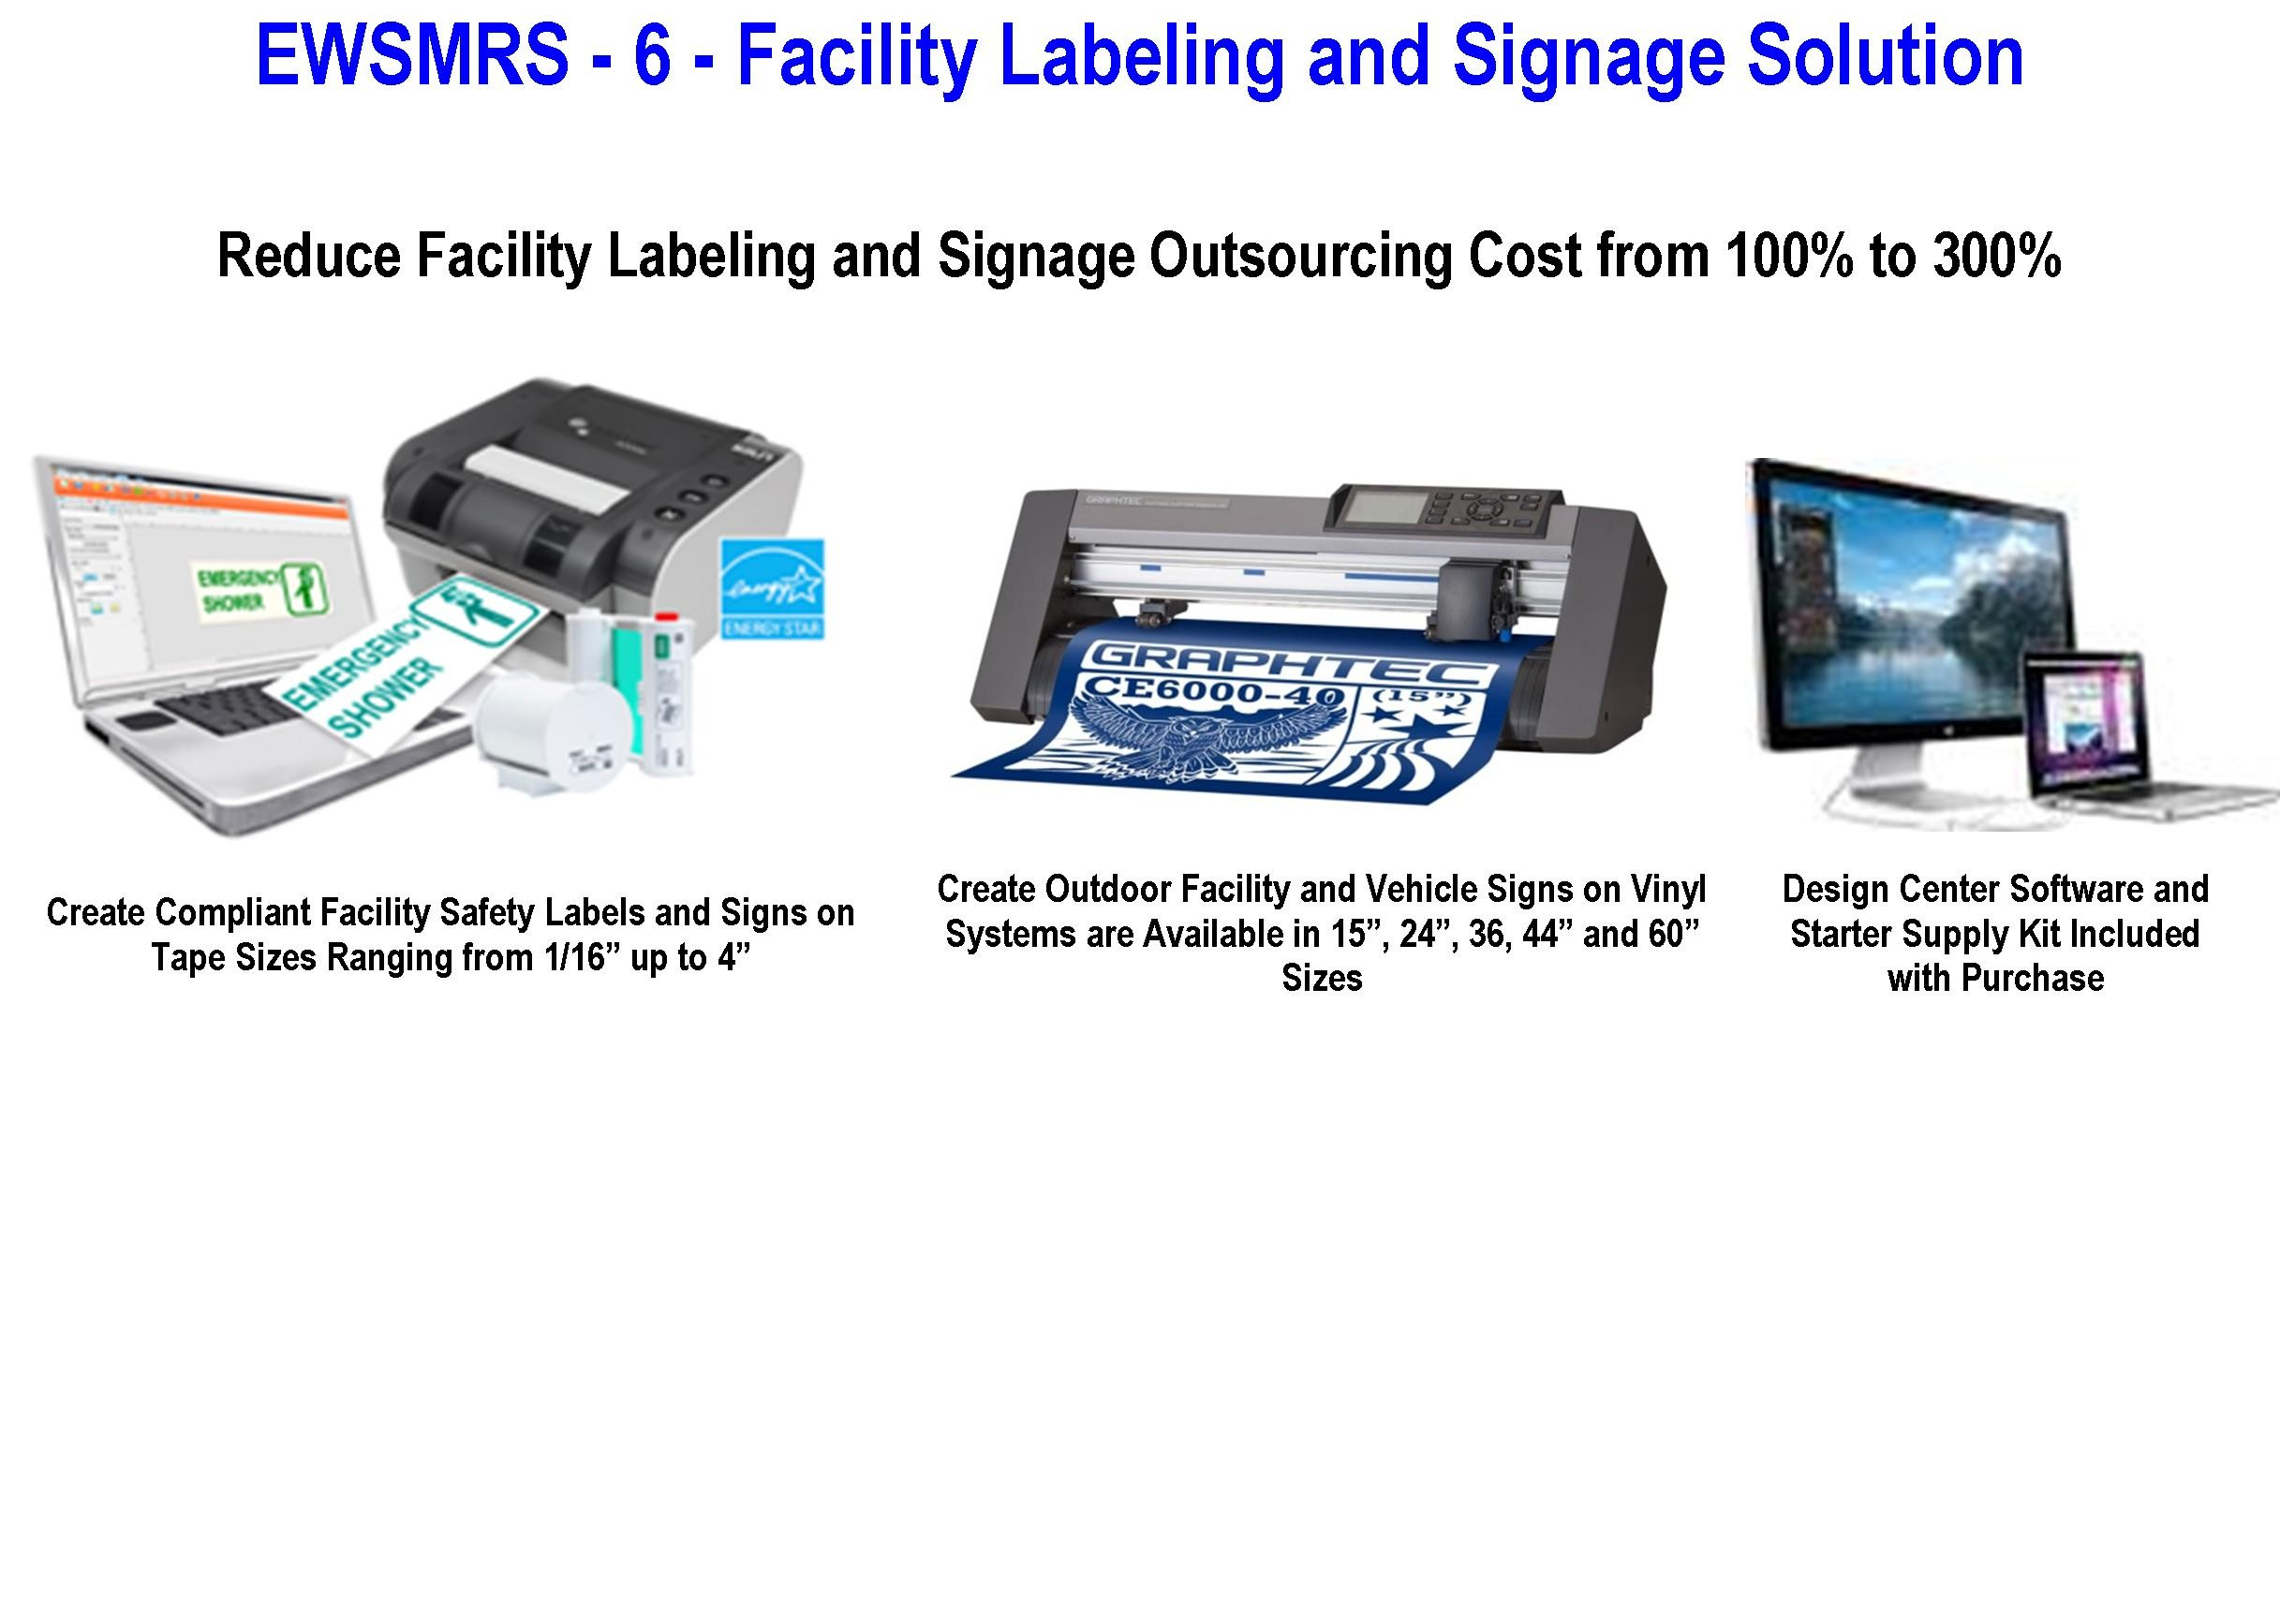 EWSMRS - 6 - Facility Labeling and Signage Solutions